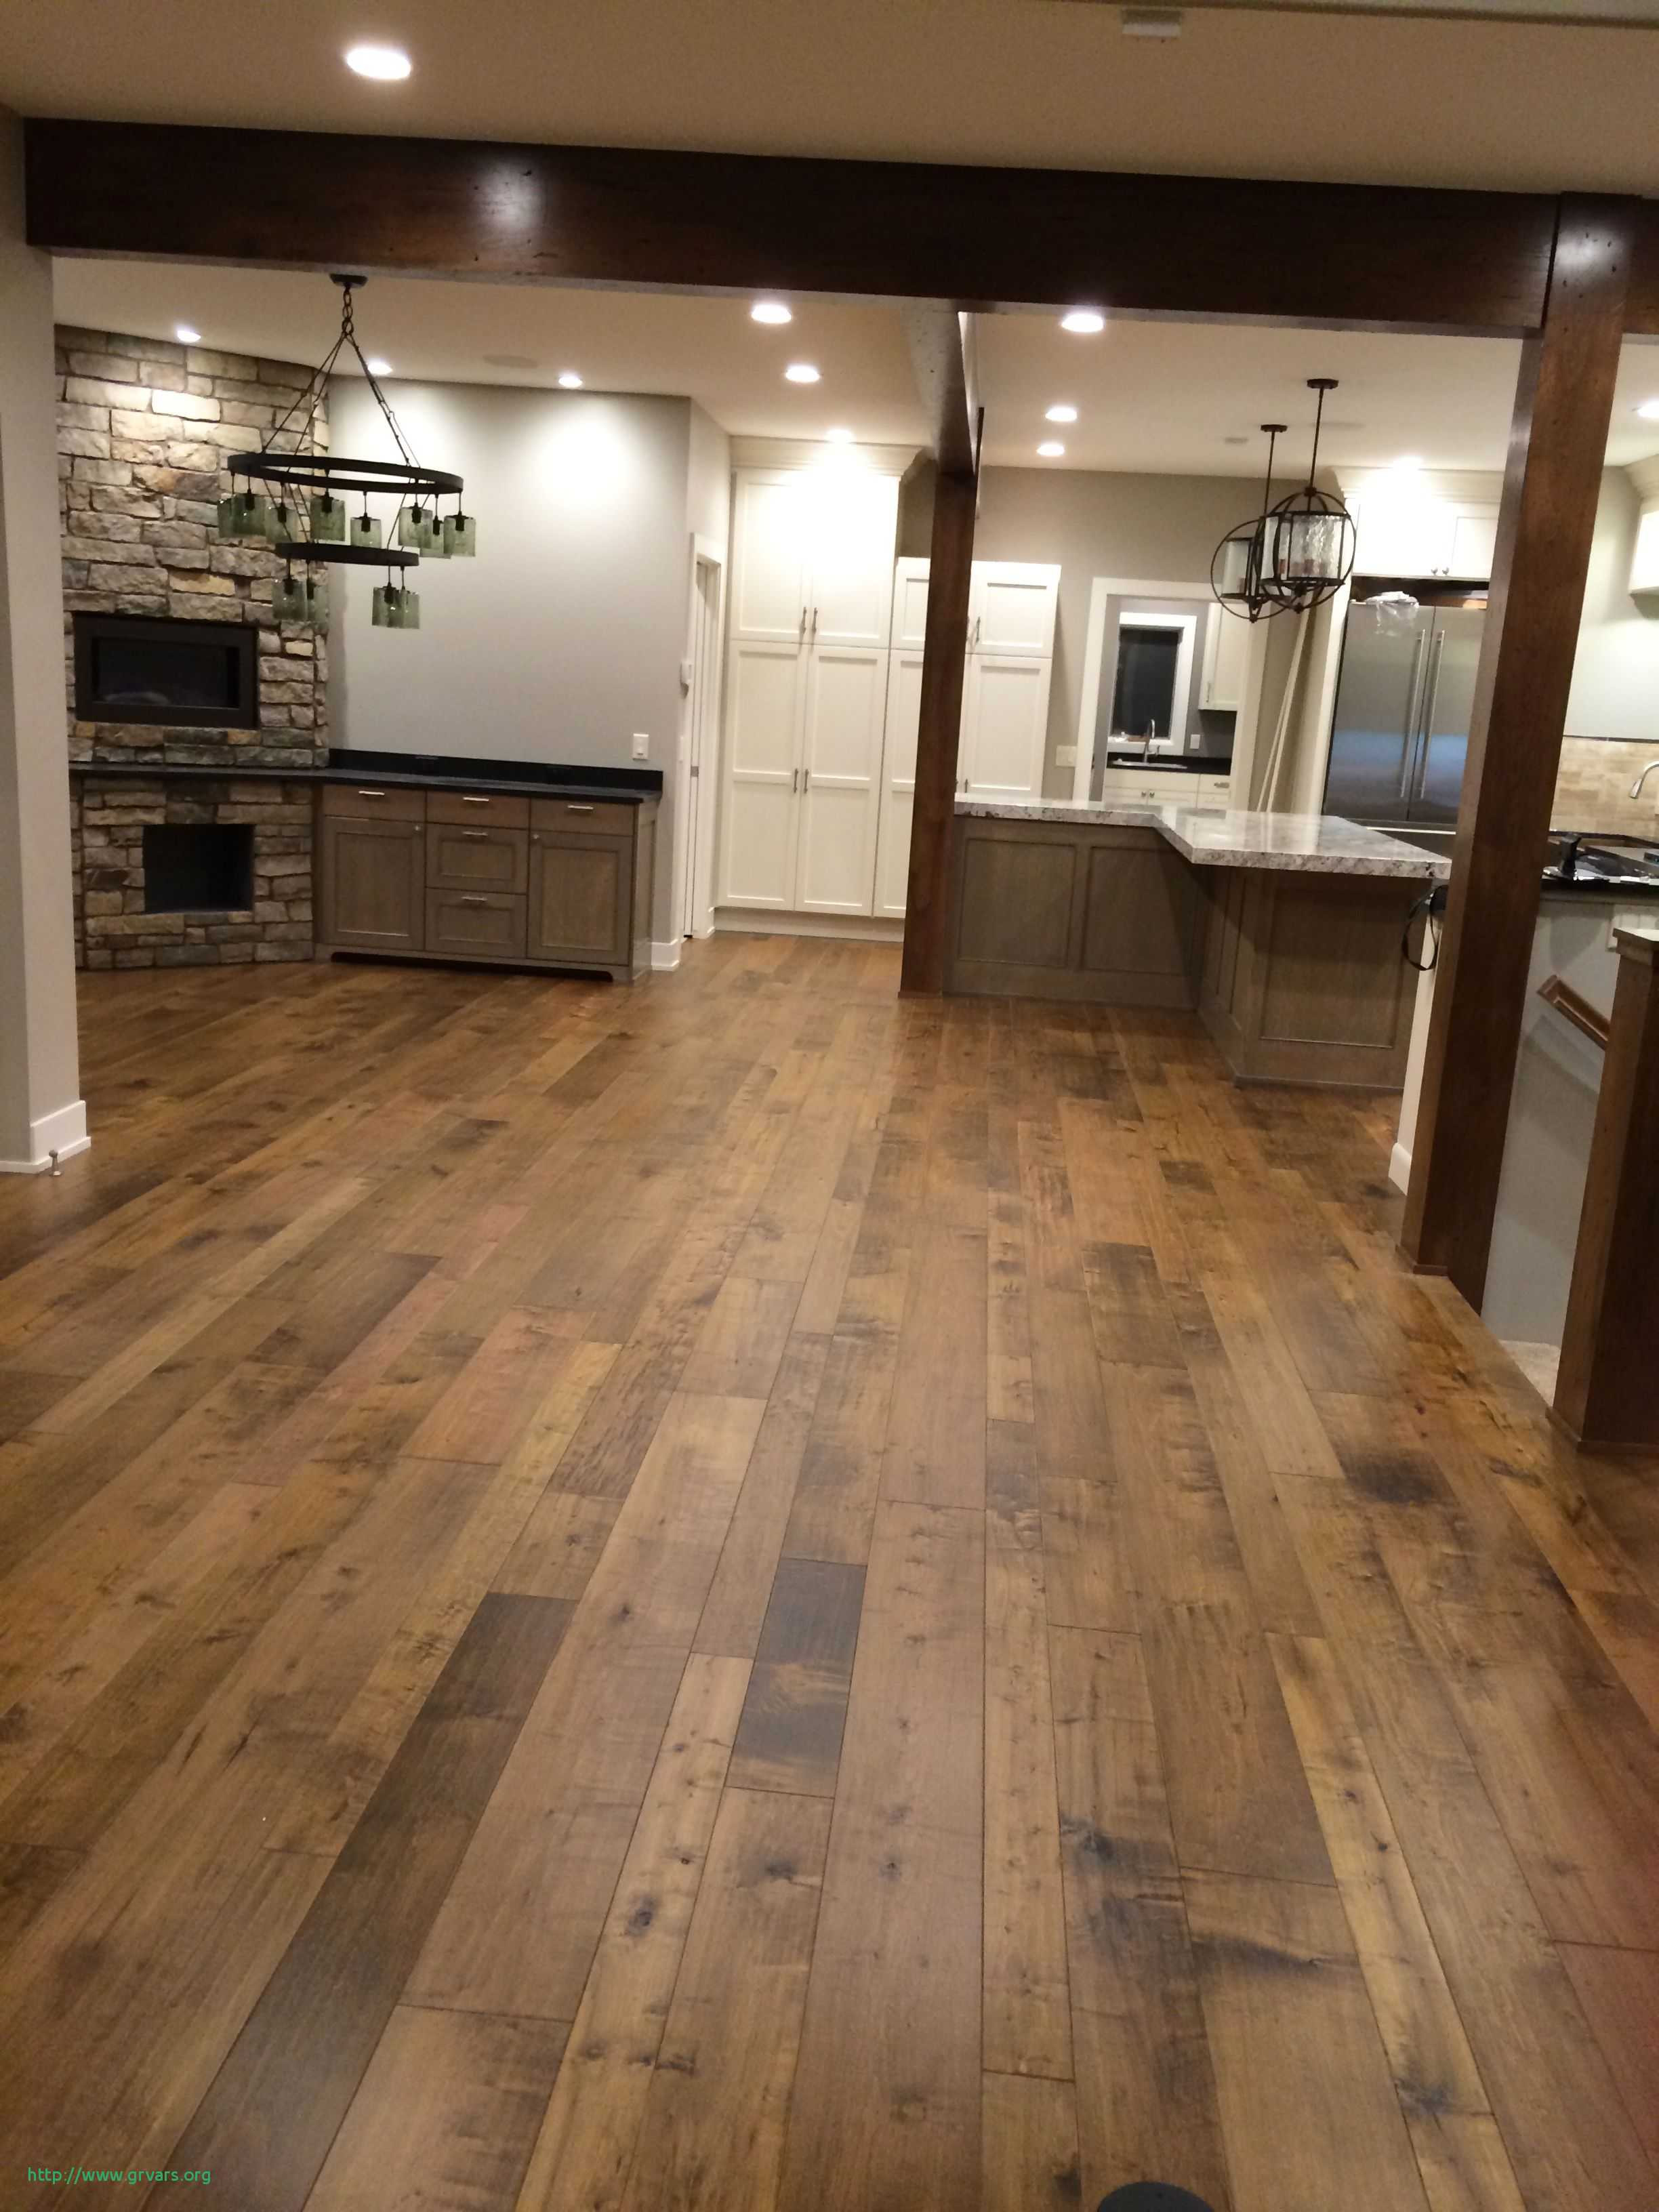 nail or glue hardwood floor of 18 frais how to put down hardwood flooring ideas blog pertaining to how to put down hardwood flooring impressionnant monterey hardwood collection rooms and spaces